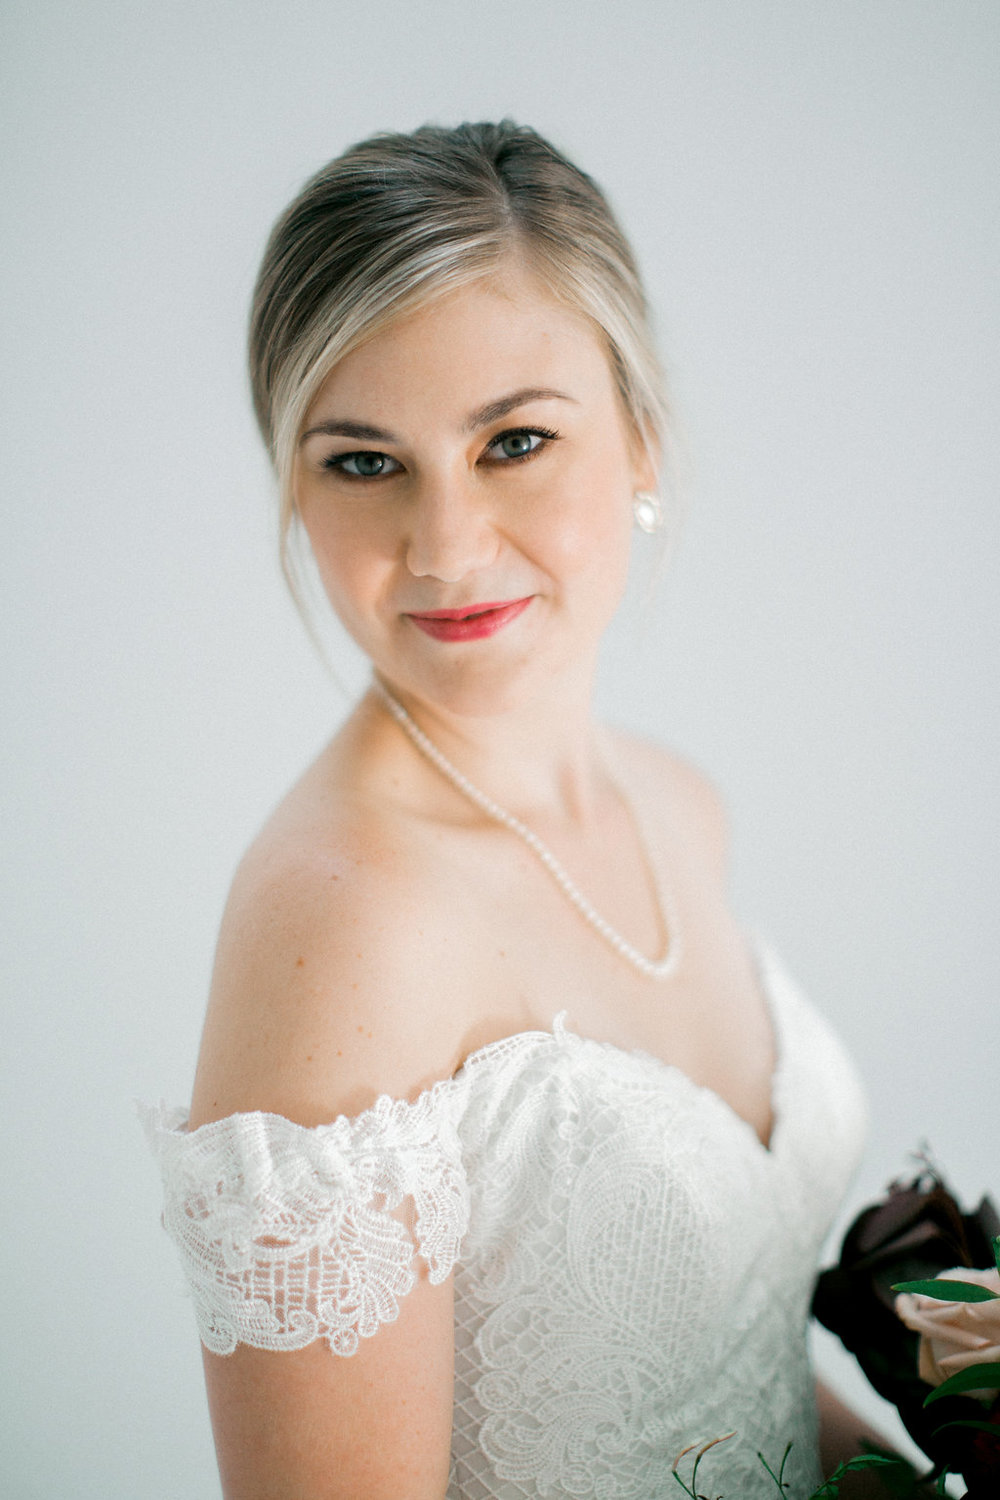 Bridal Portrait Photos in Dallas - Dallas Wedding Florist